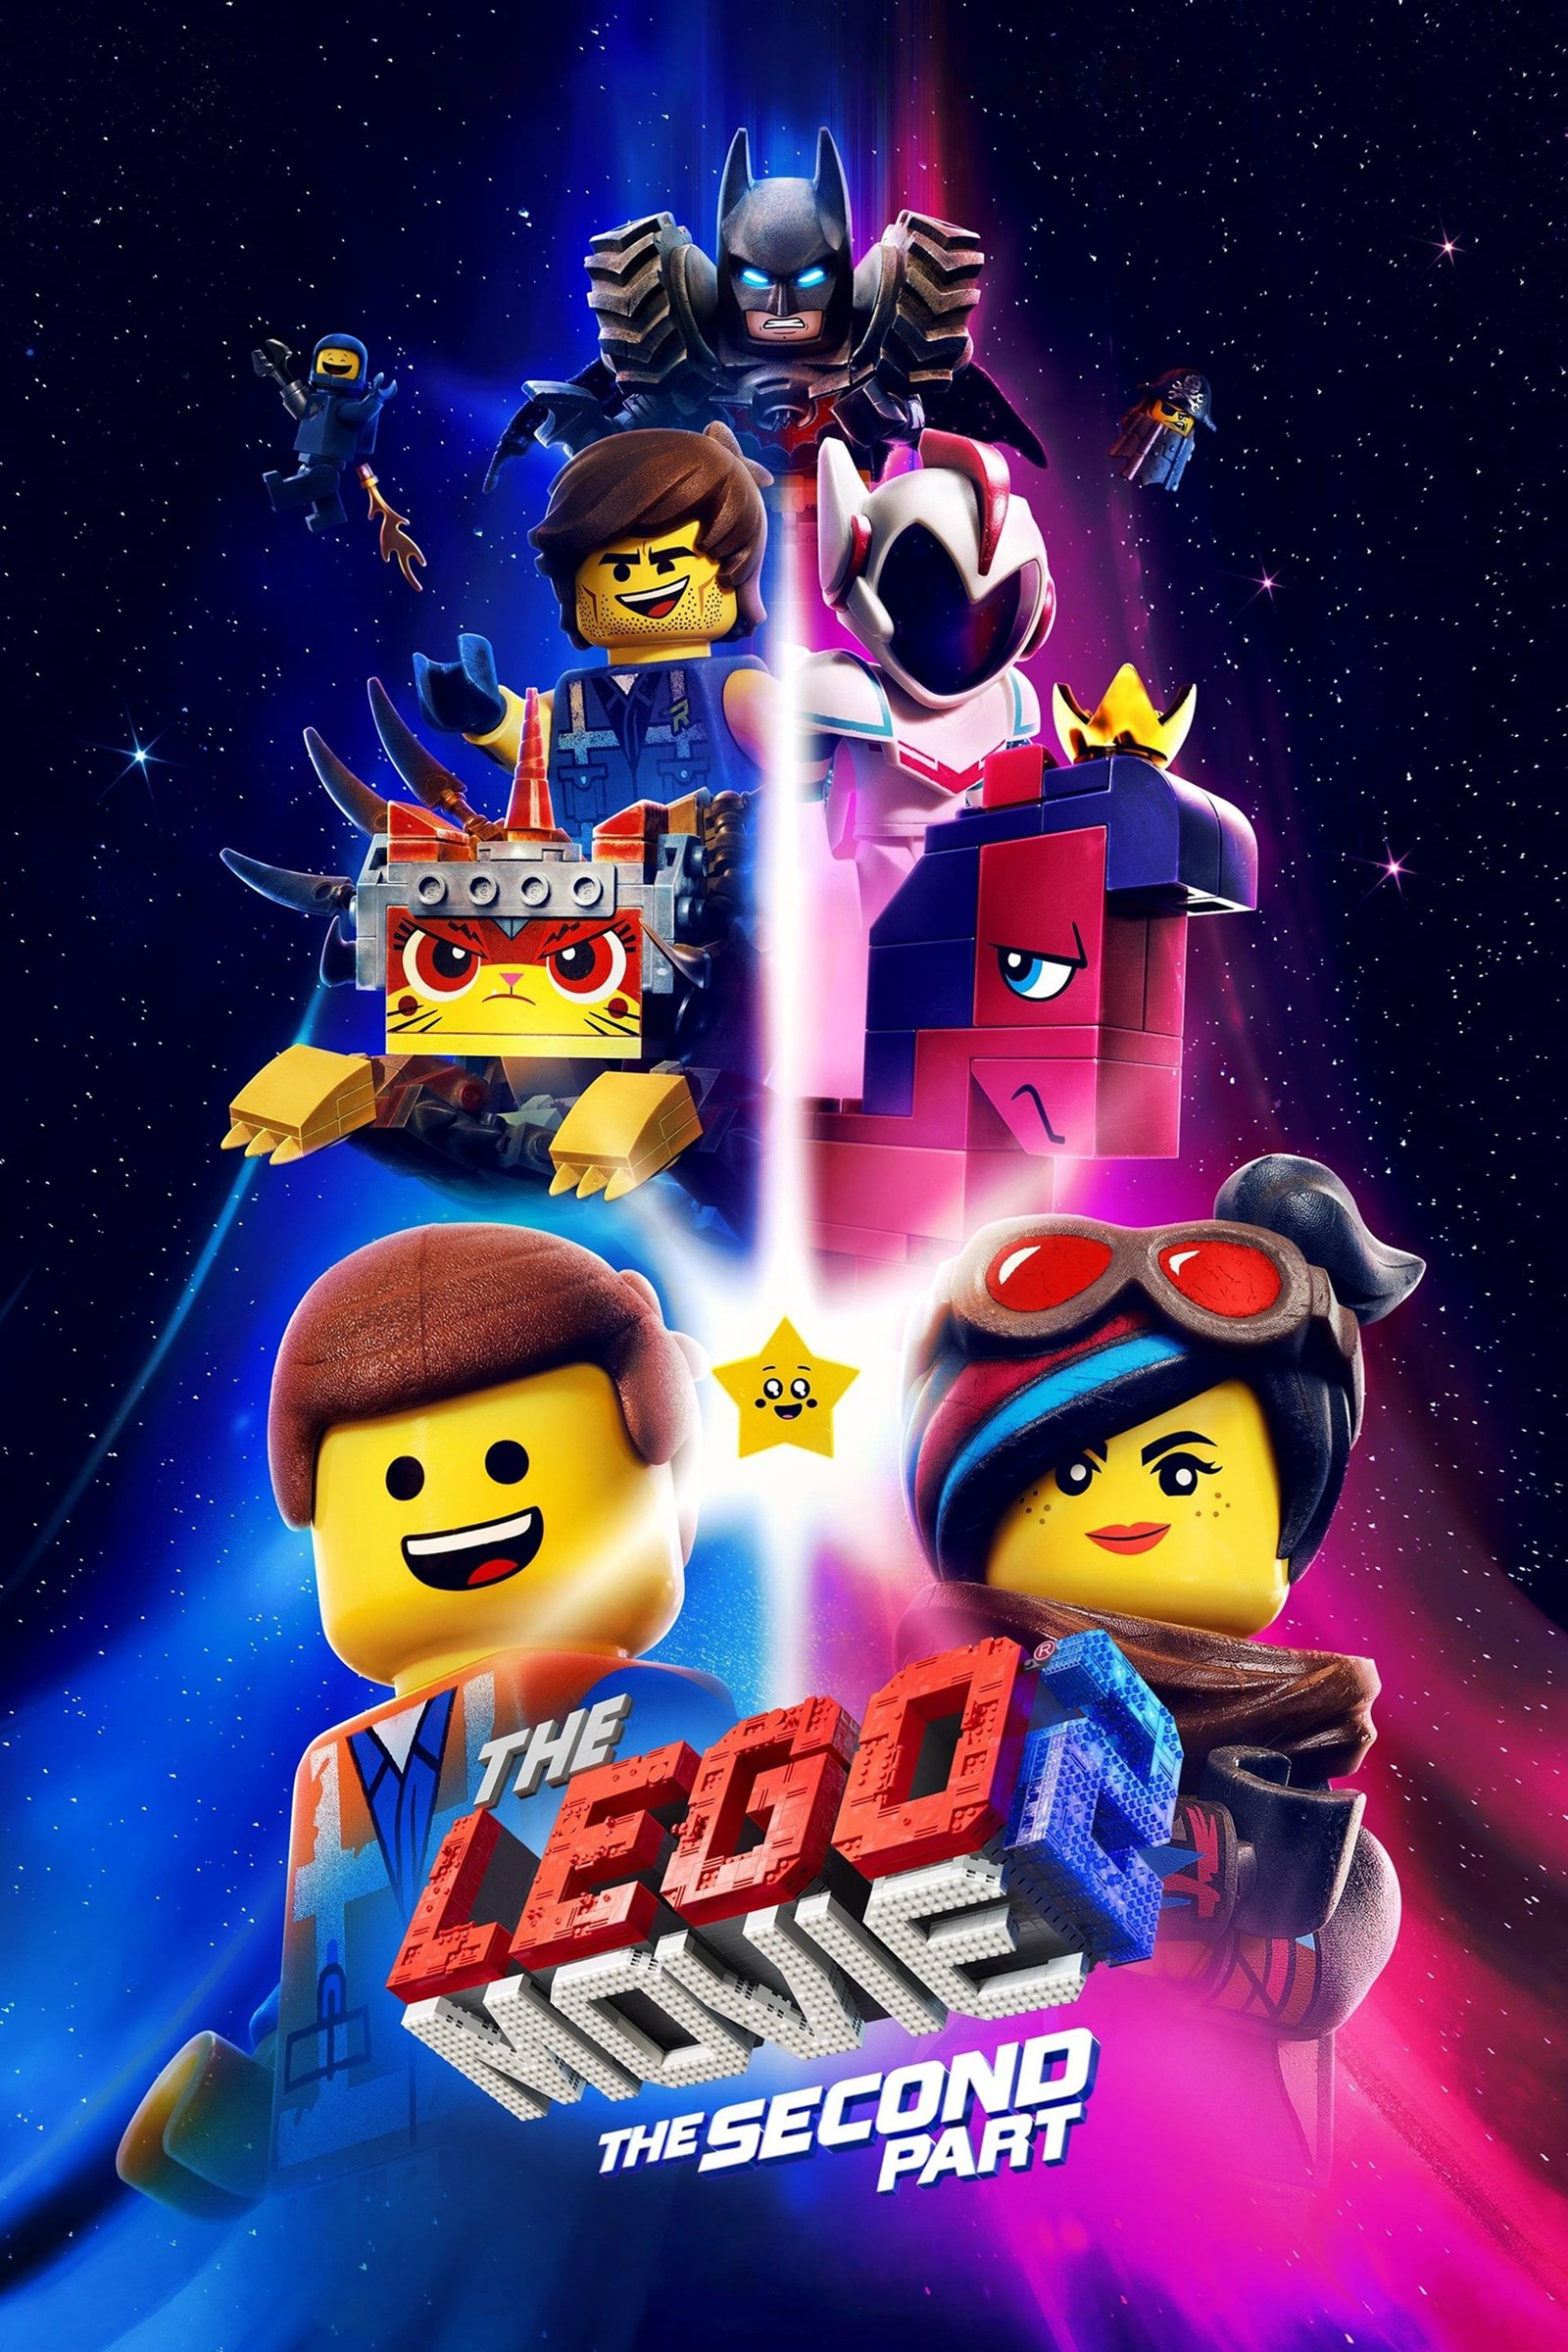 Subscene - Subtitles for The Lego Movie 2: The Second Part